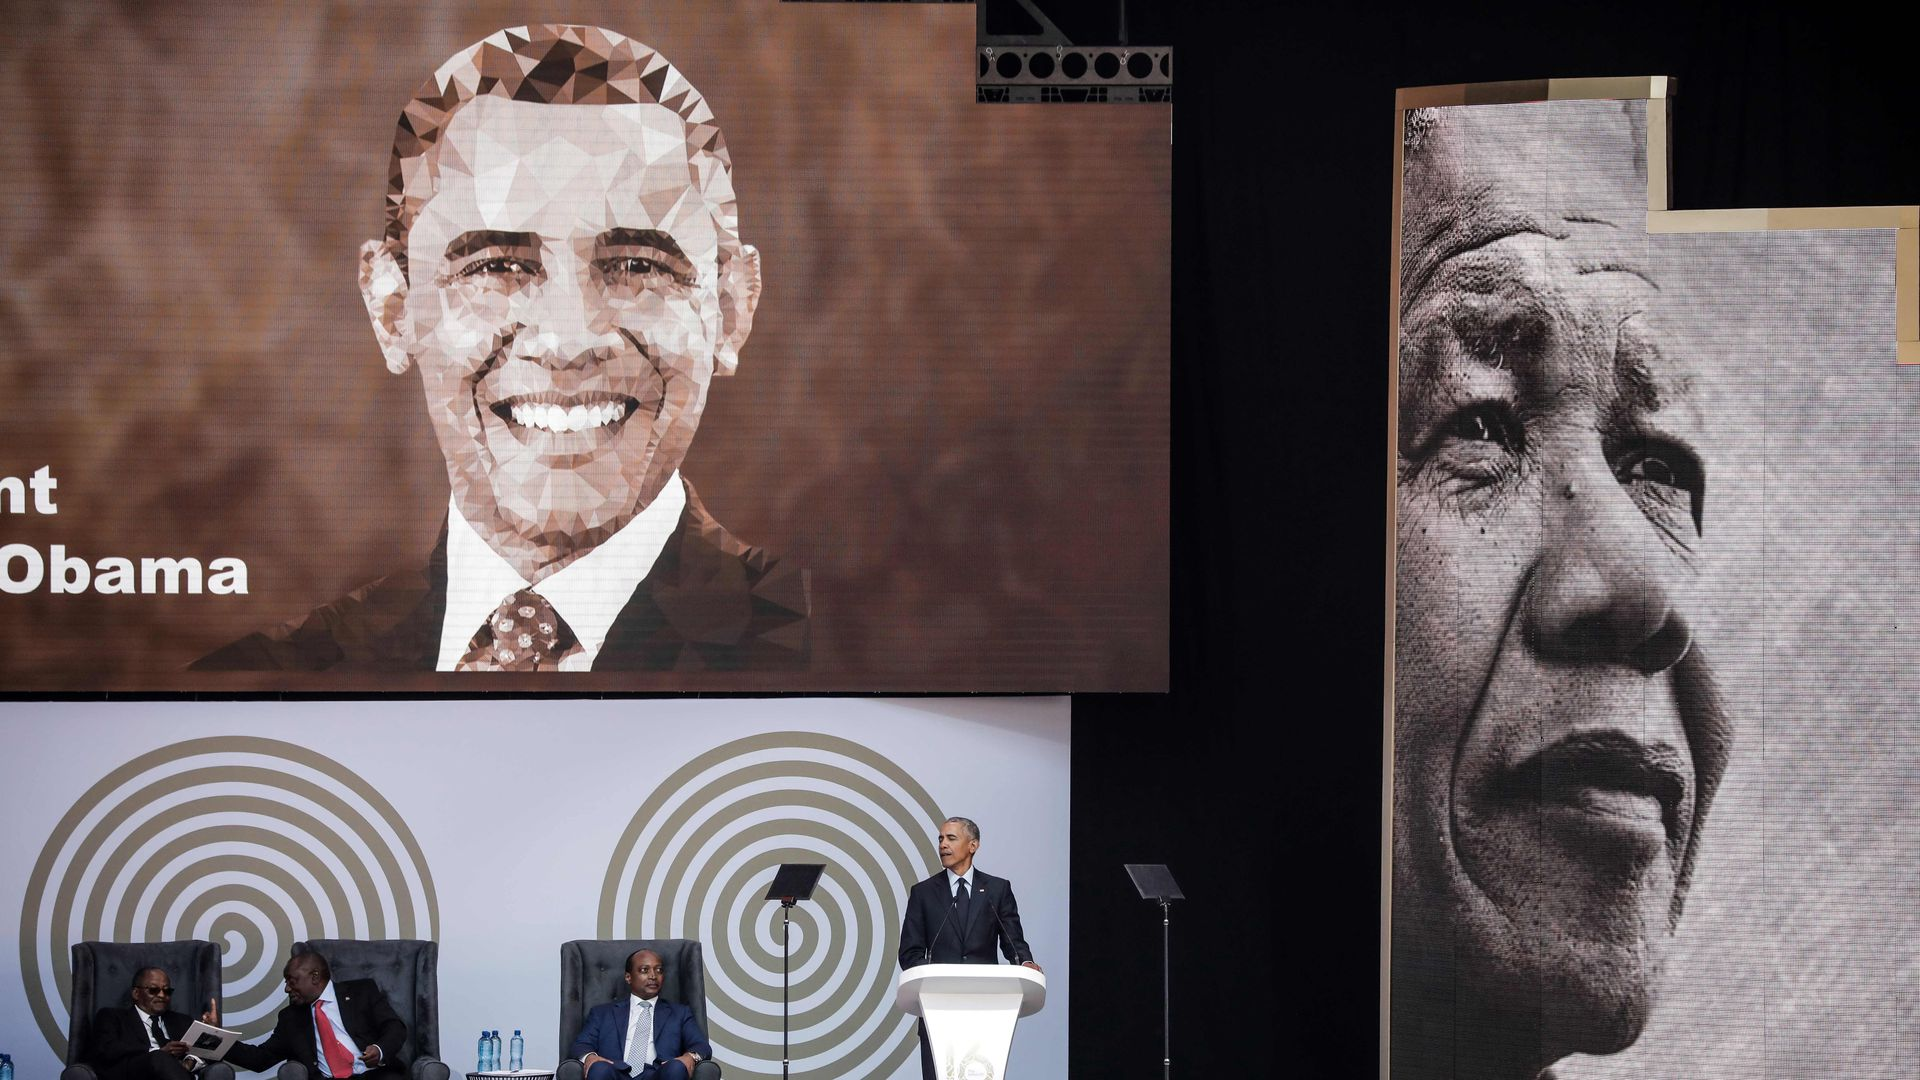 Obama giving a speech on Mandela's 100th birthday